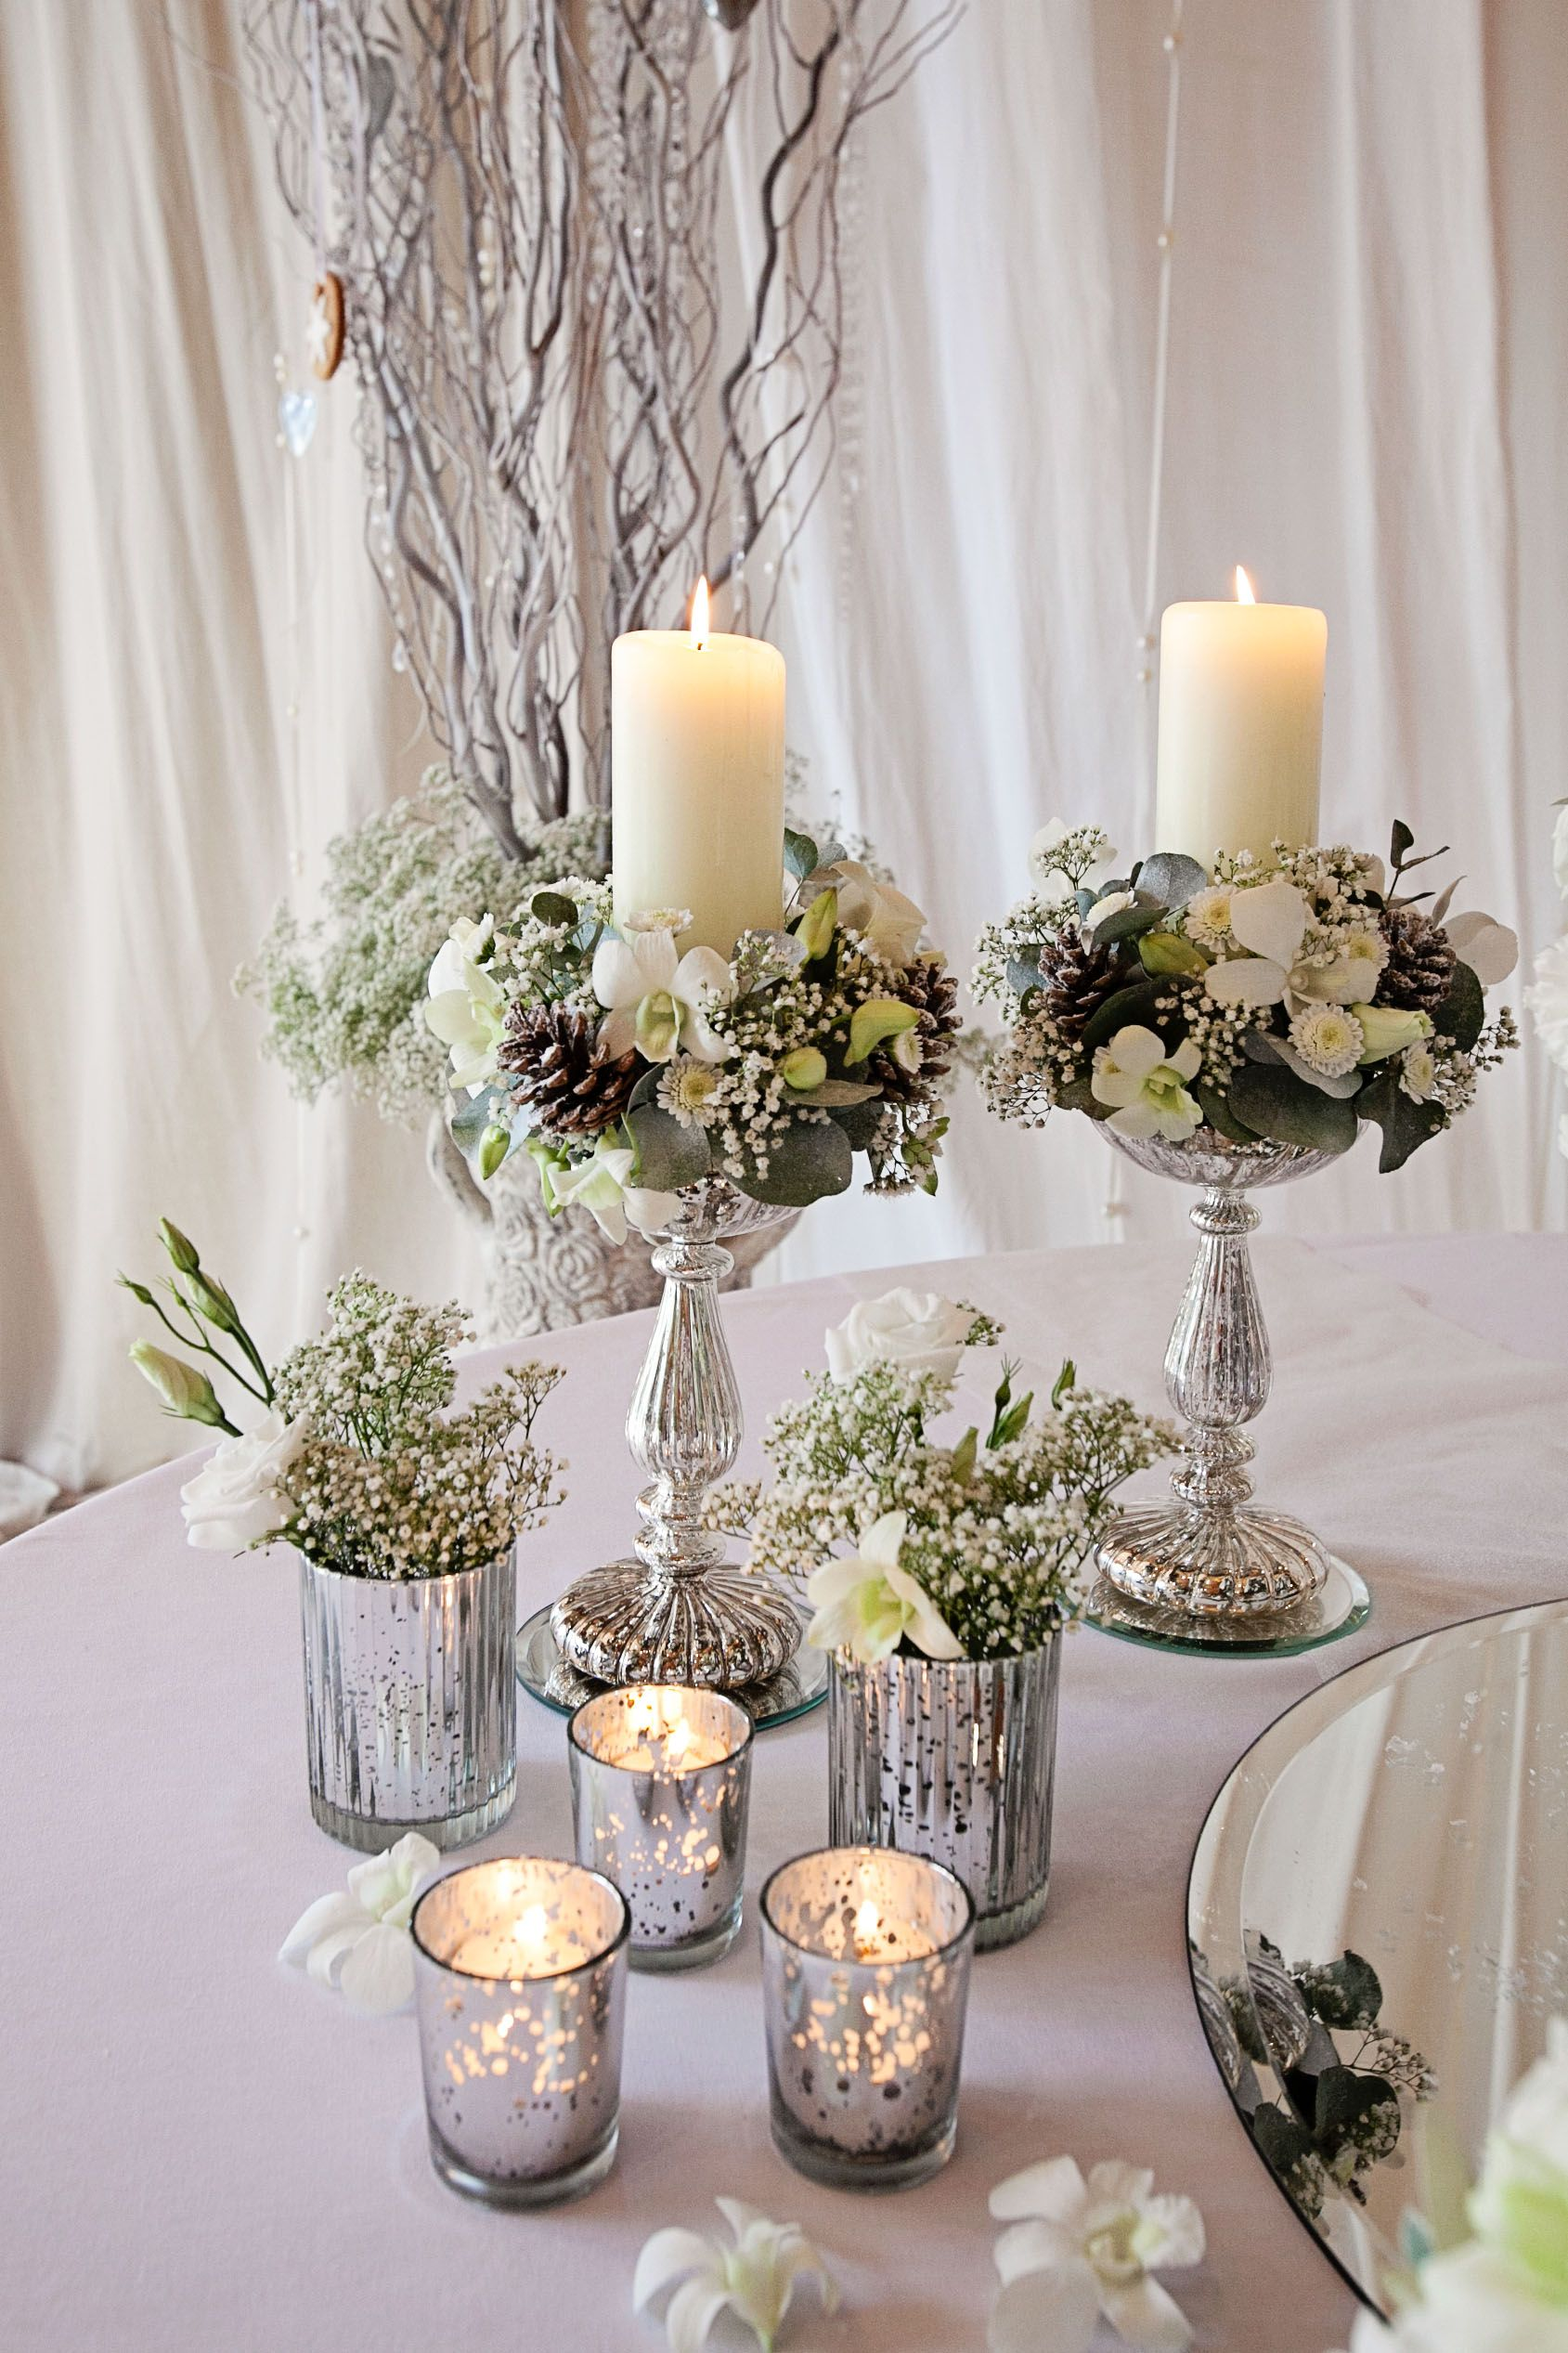 Tiara flower arrangements candle stand and